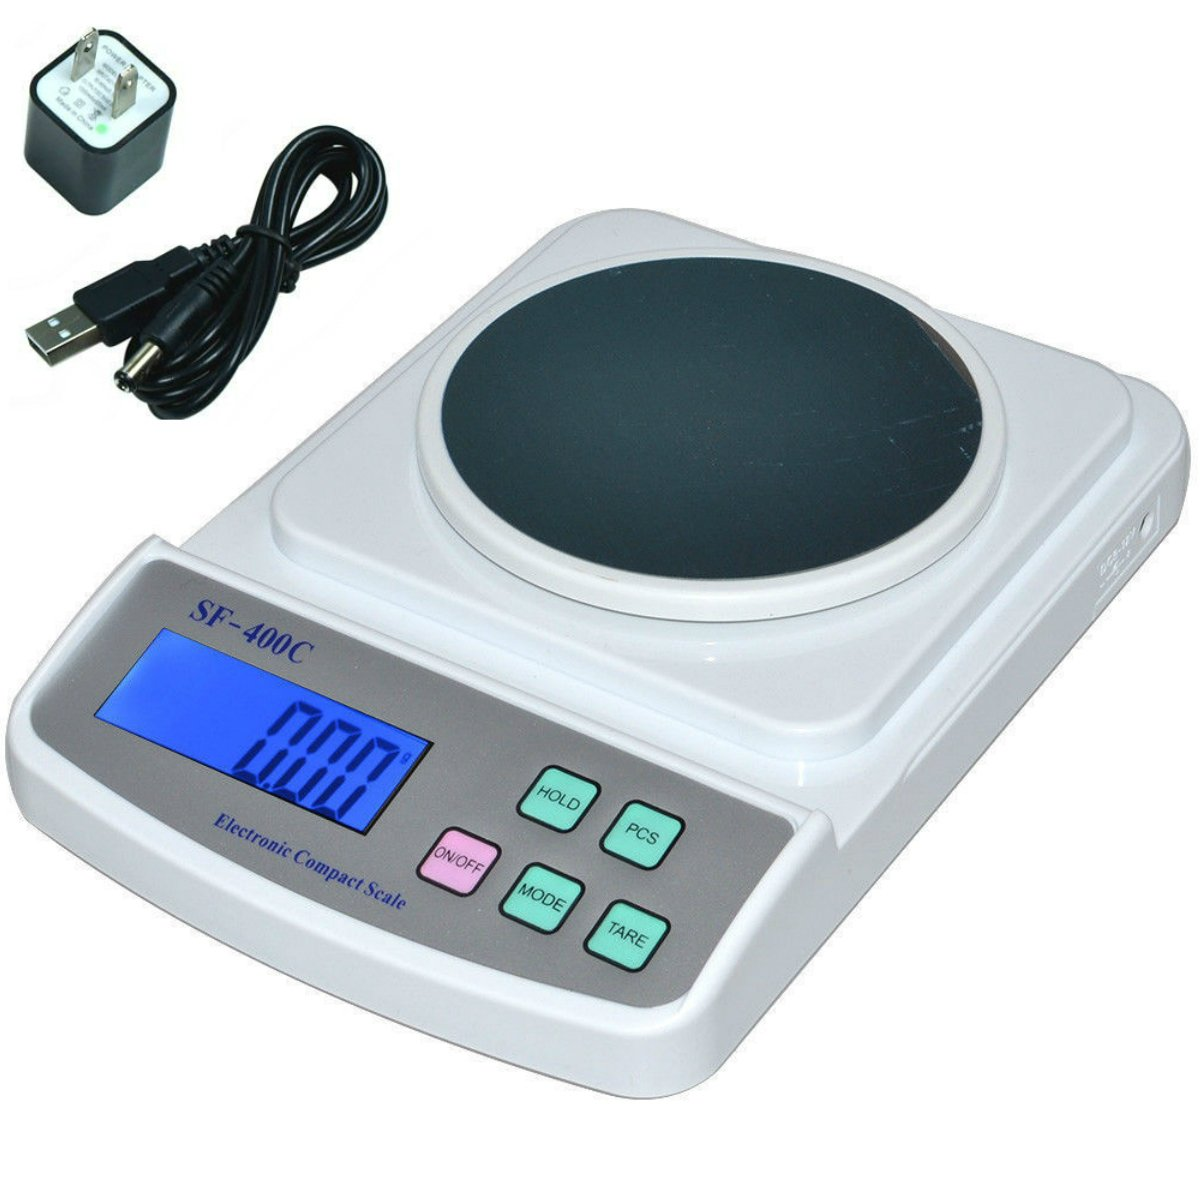 500g/0.01g Portable Electronic Laboratory School Scale with AC/DC Adapter | Lab Precision Balance Digital Electronic Scale